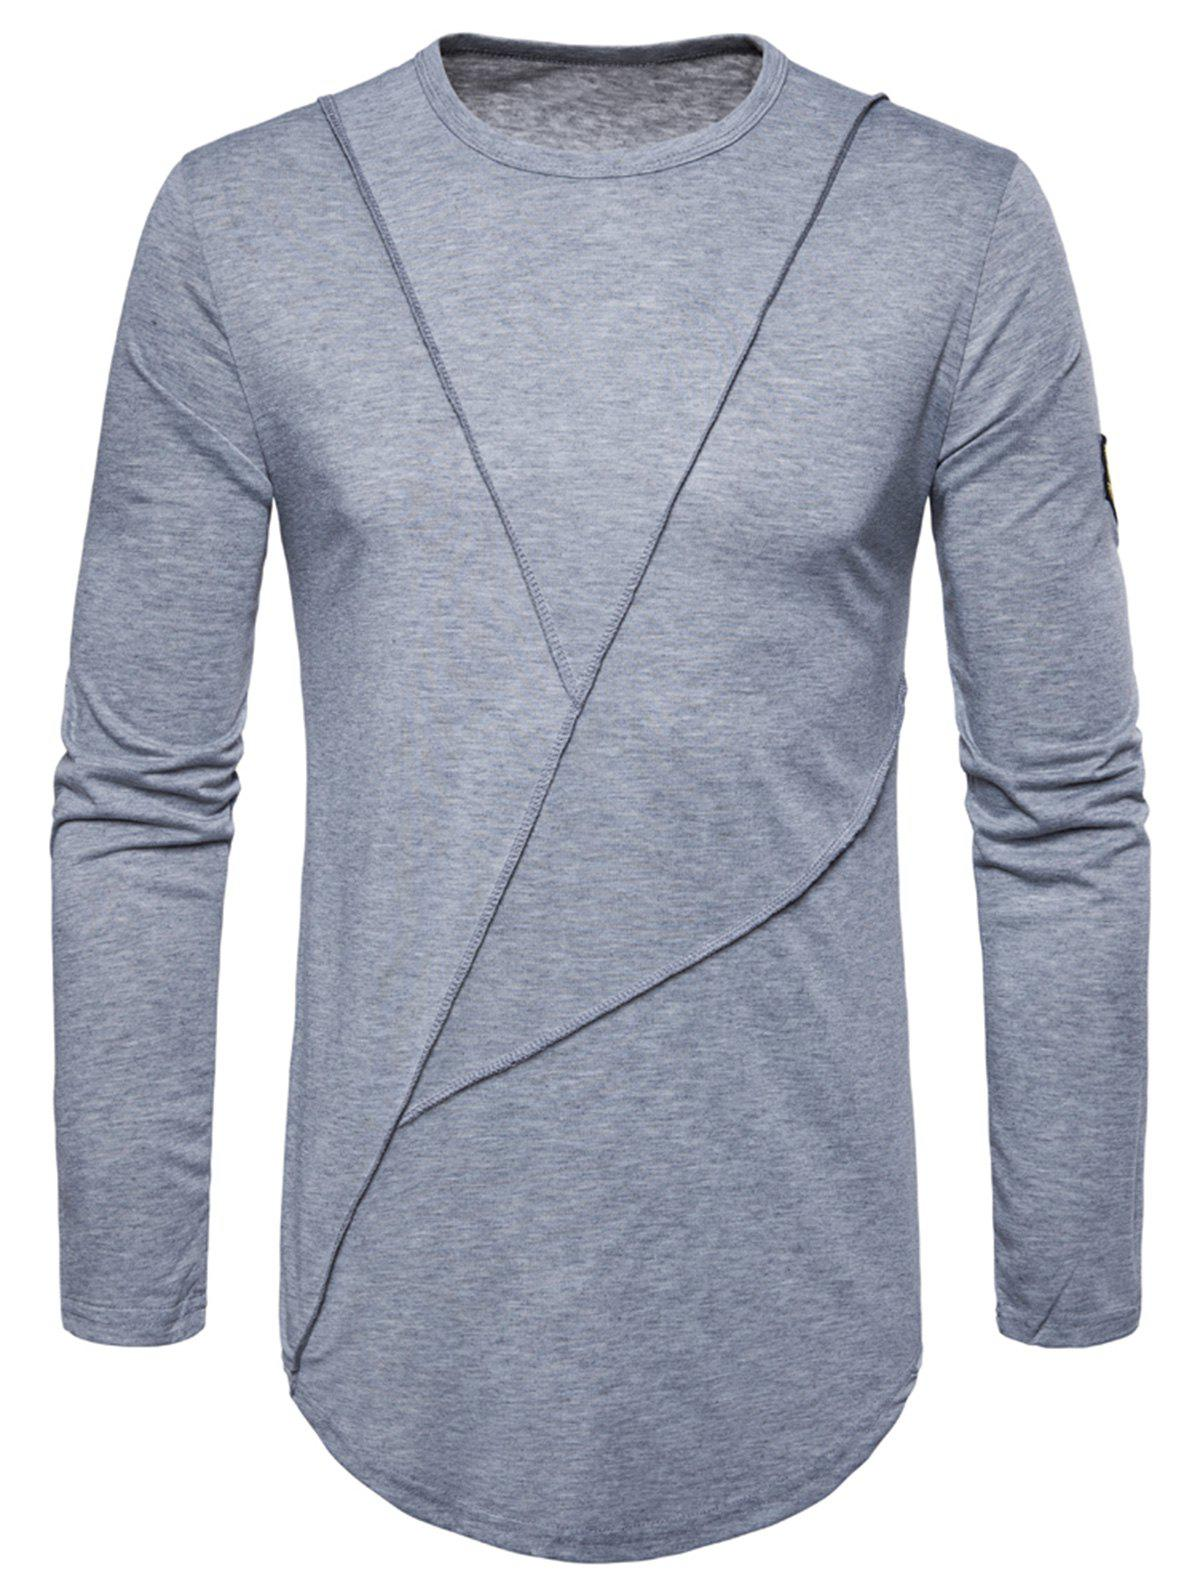 49441d7db2df 67% OFF ] 2019 Embroidered Arrow Curved Hem Crew Necklace T-shirt ...